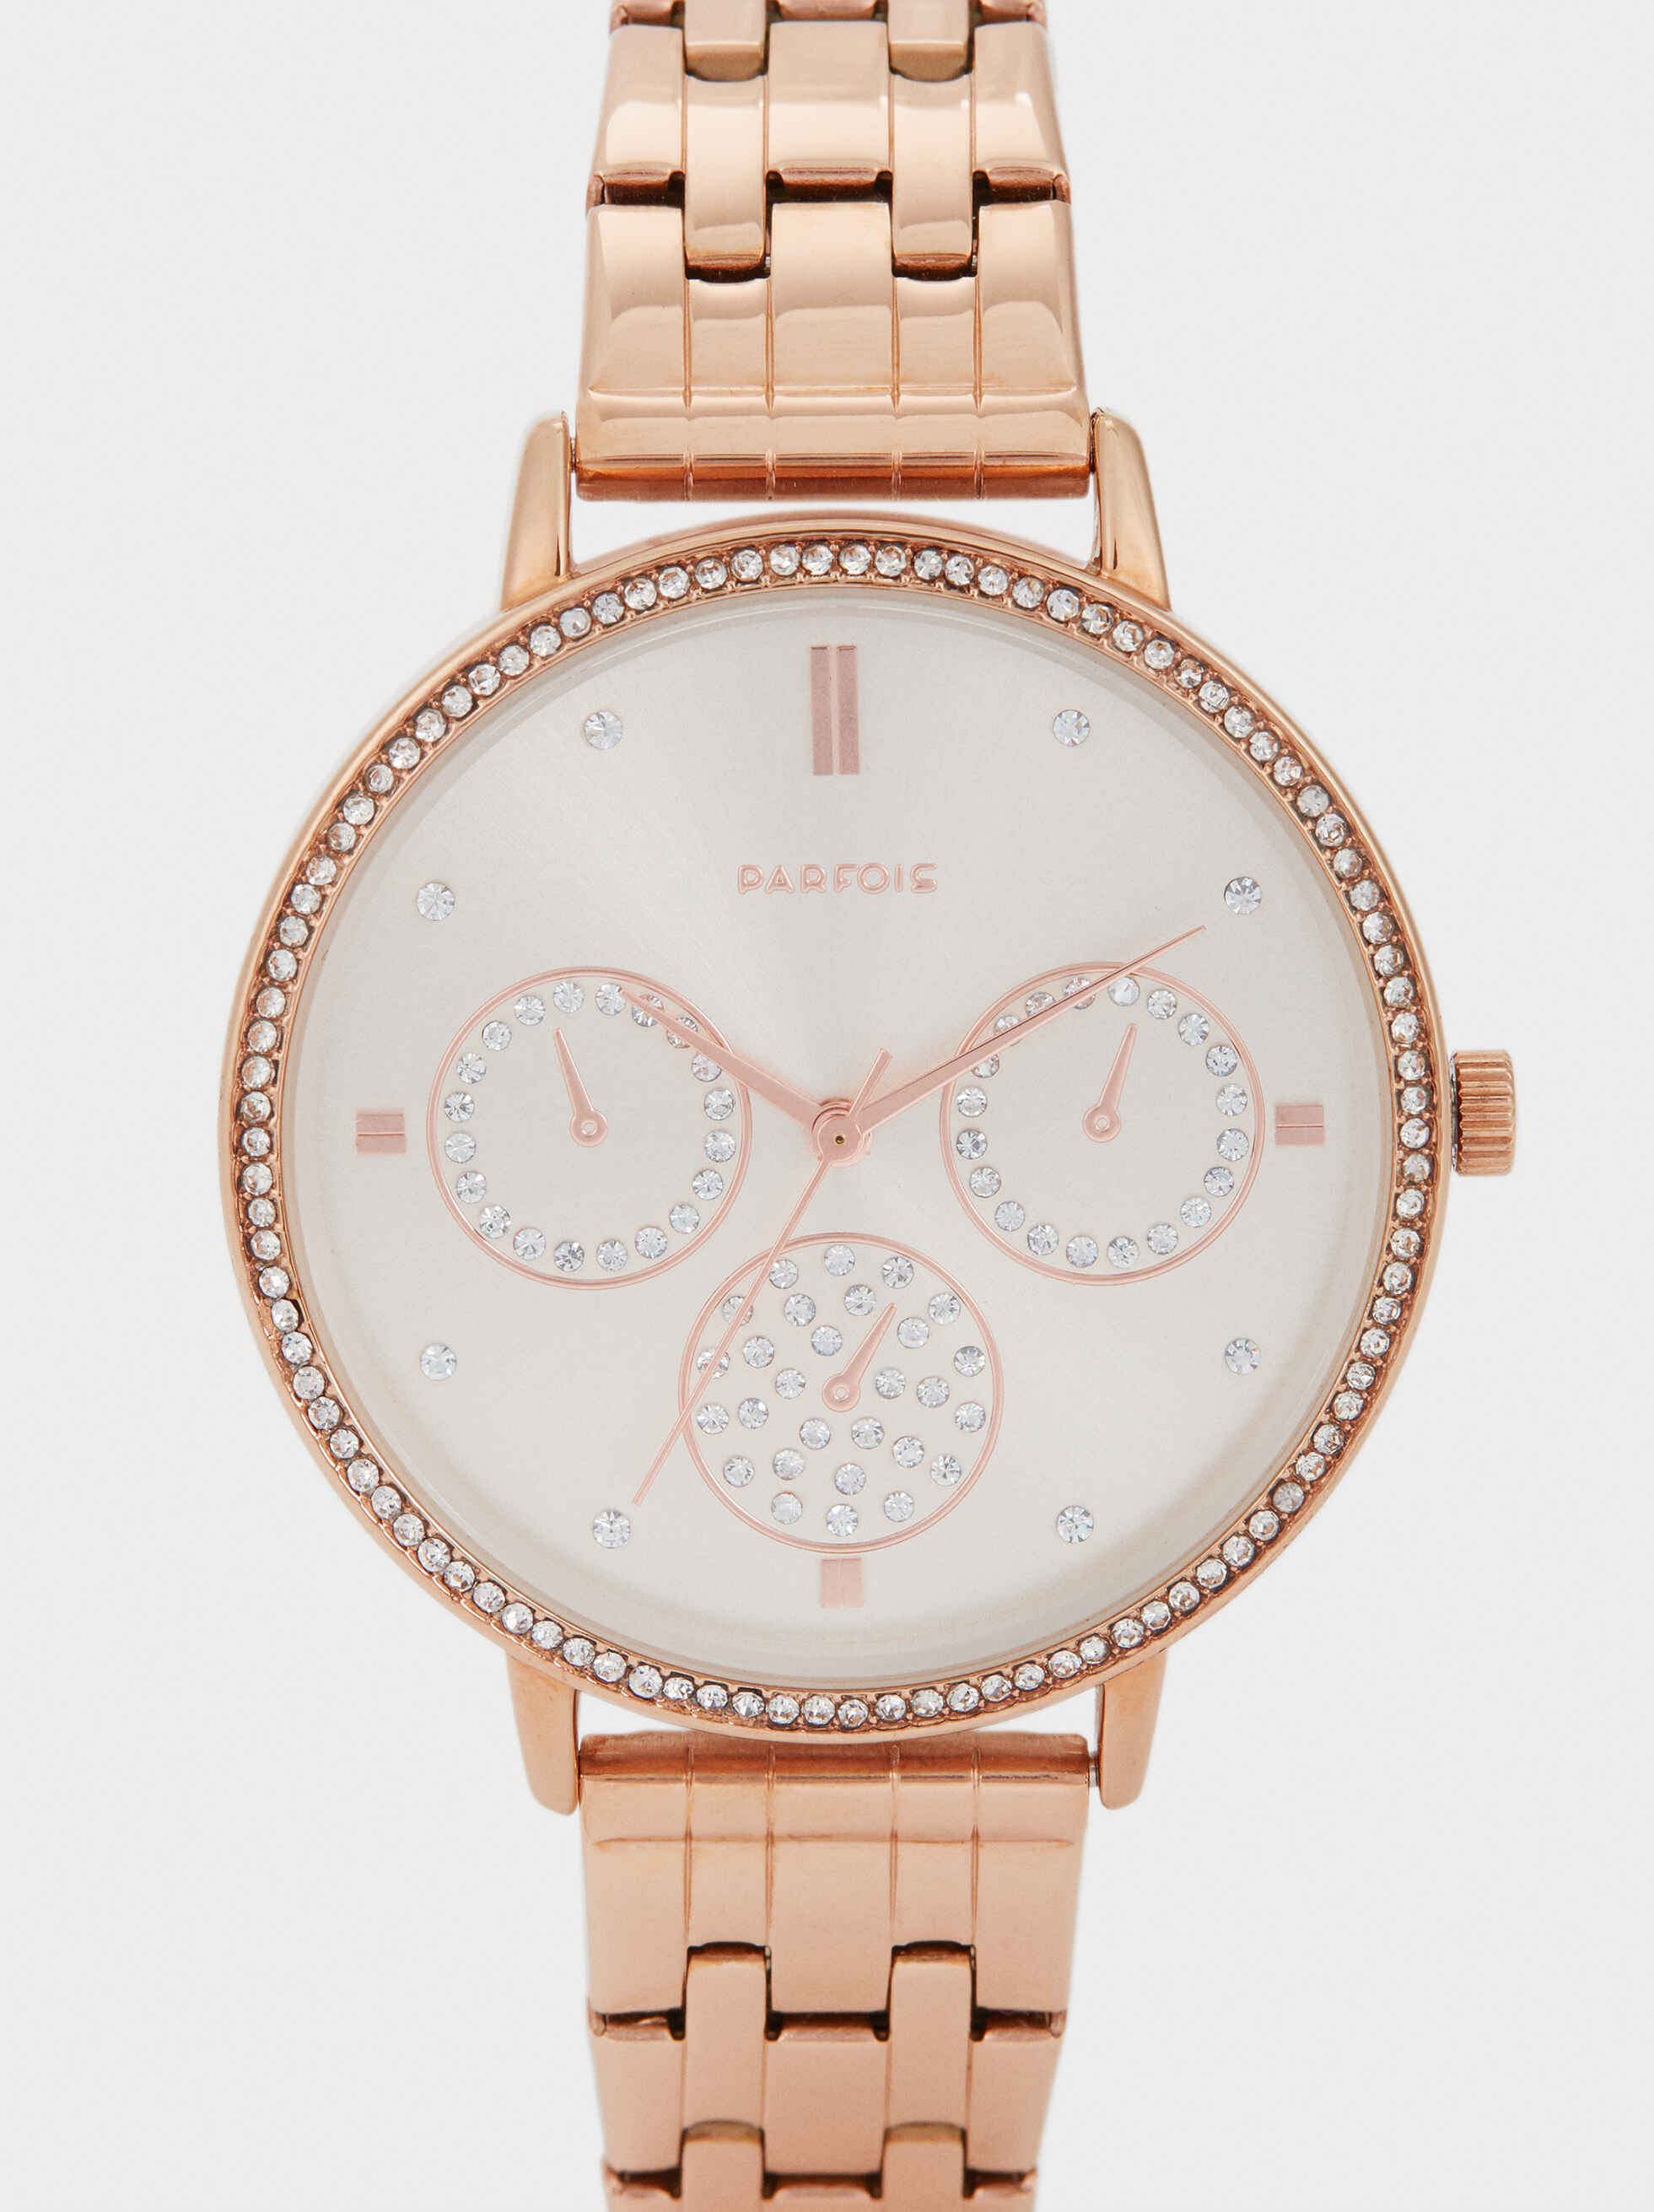 Watch With Stainless Steel Strap And Gems On The Face, Orange, hi-res